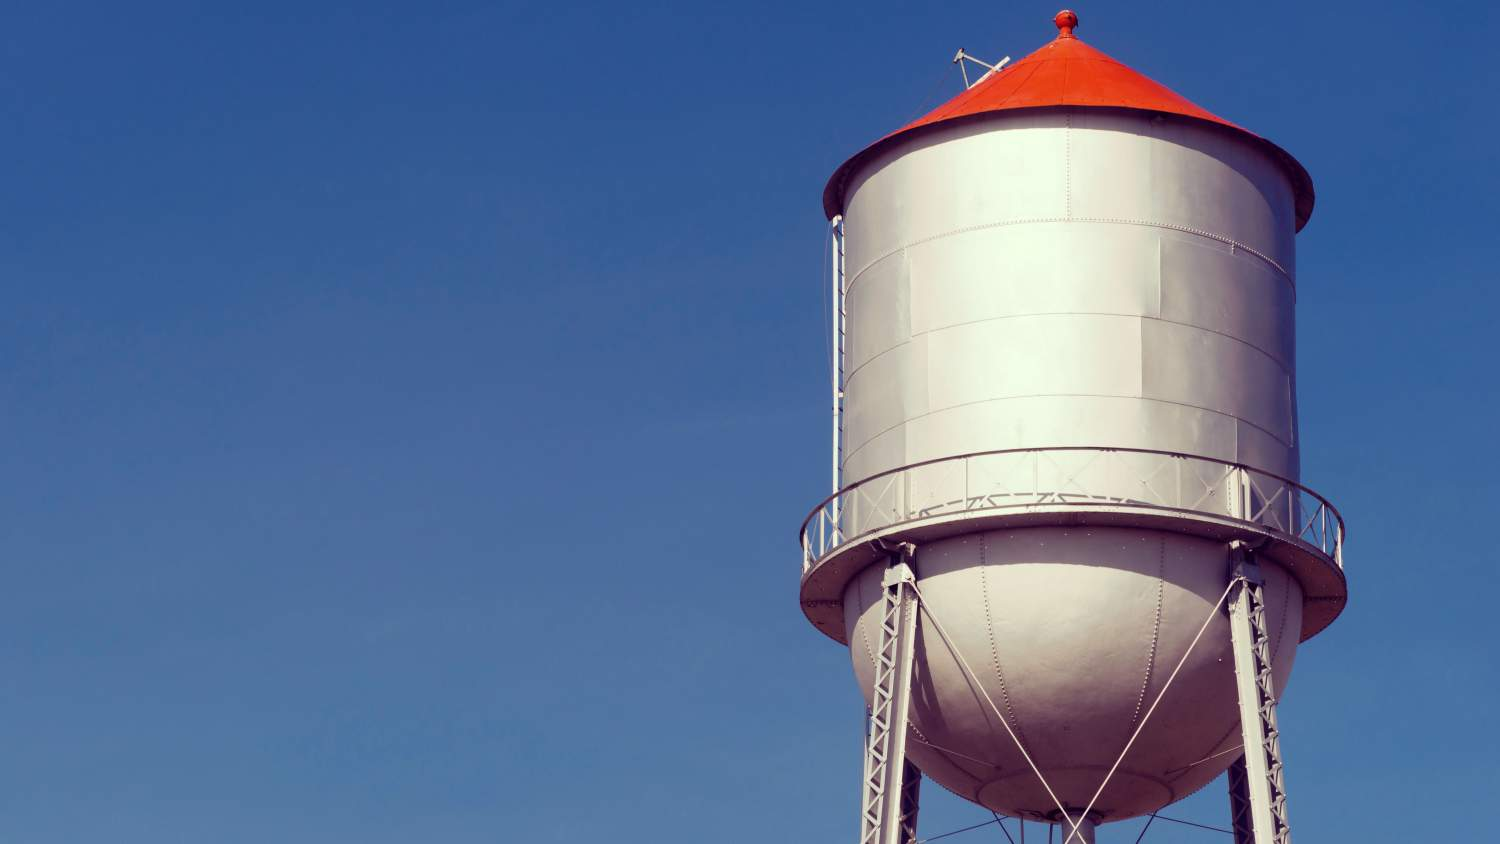 Water tower in a small town